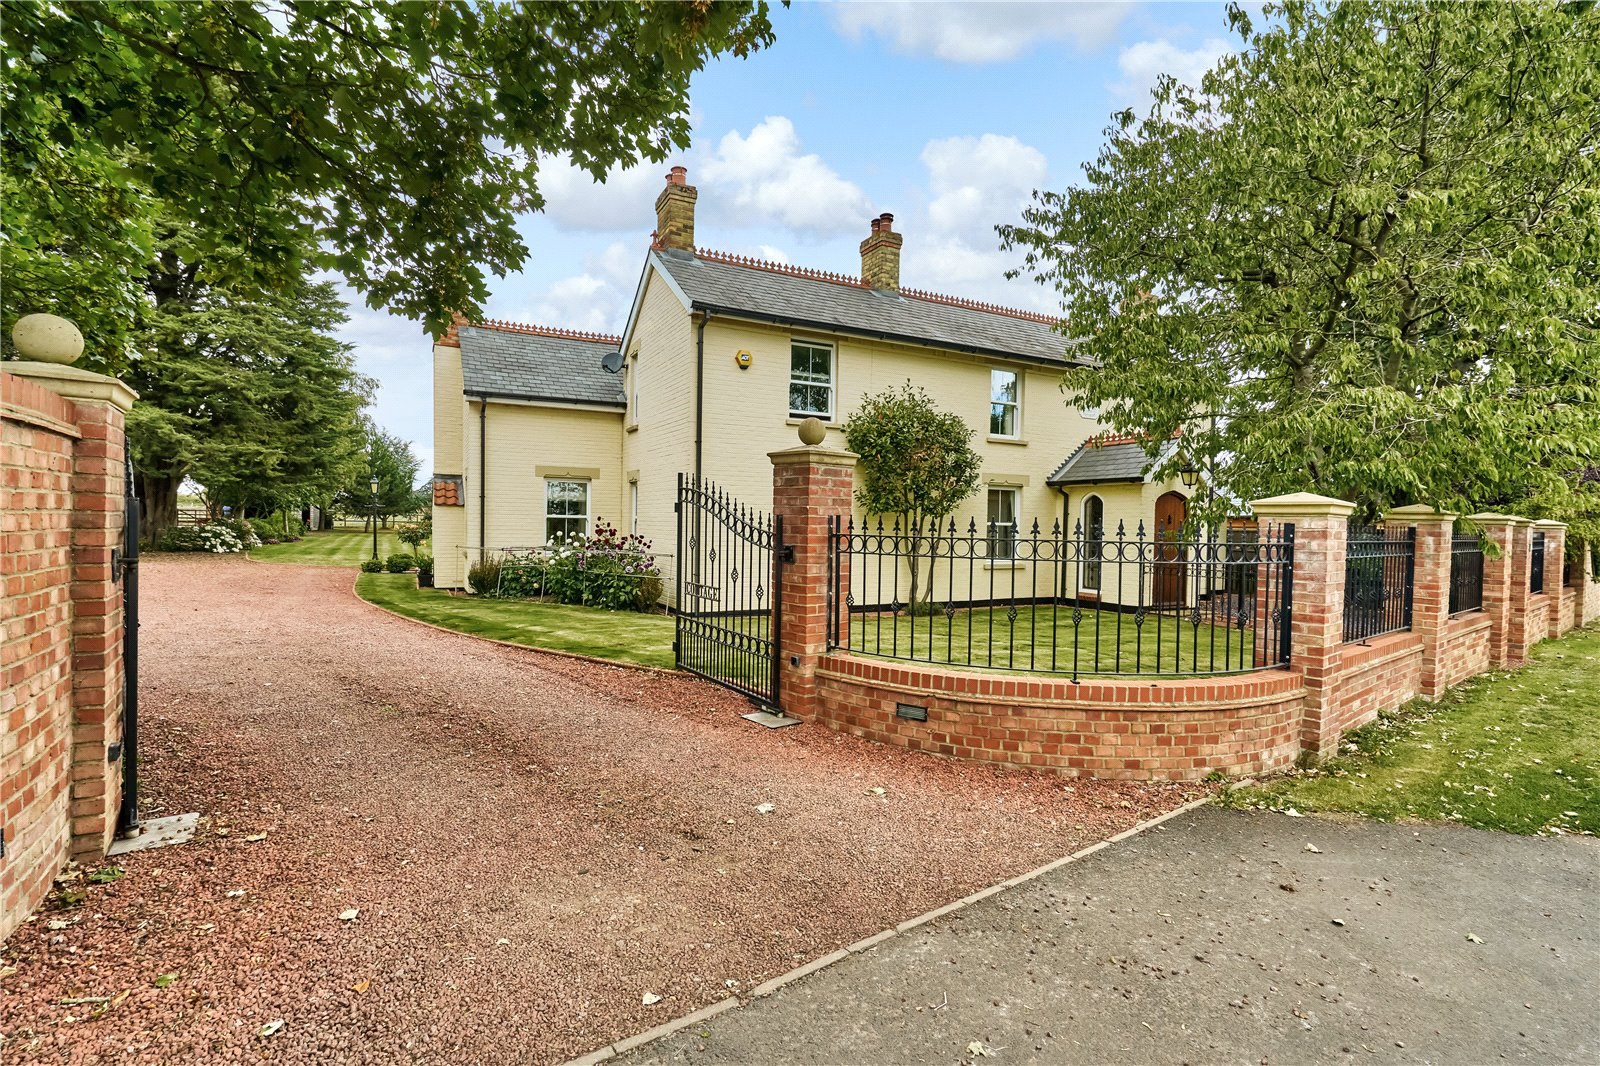 4 bed house for sale in Sutton Mill Road, Potton  - Property Image 1